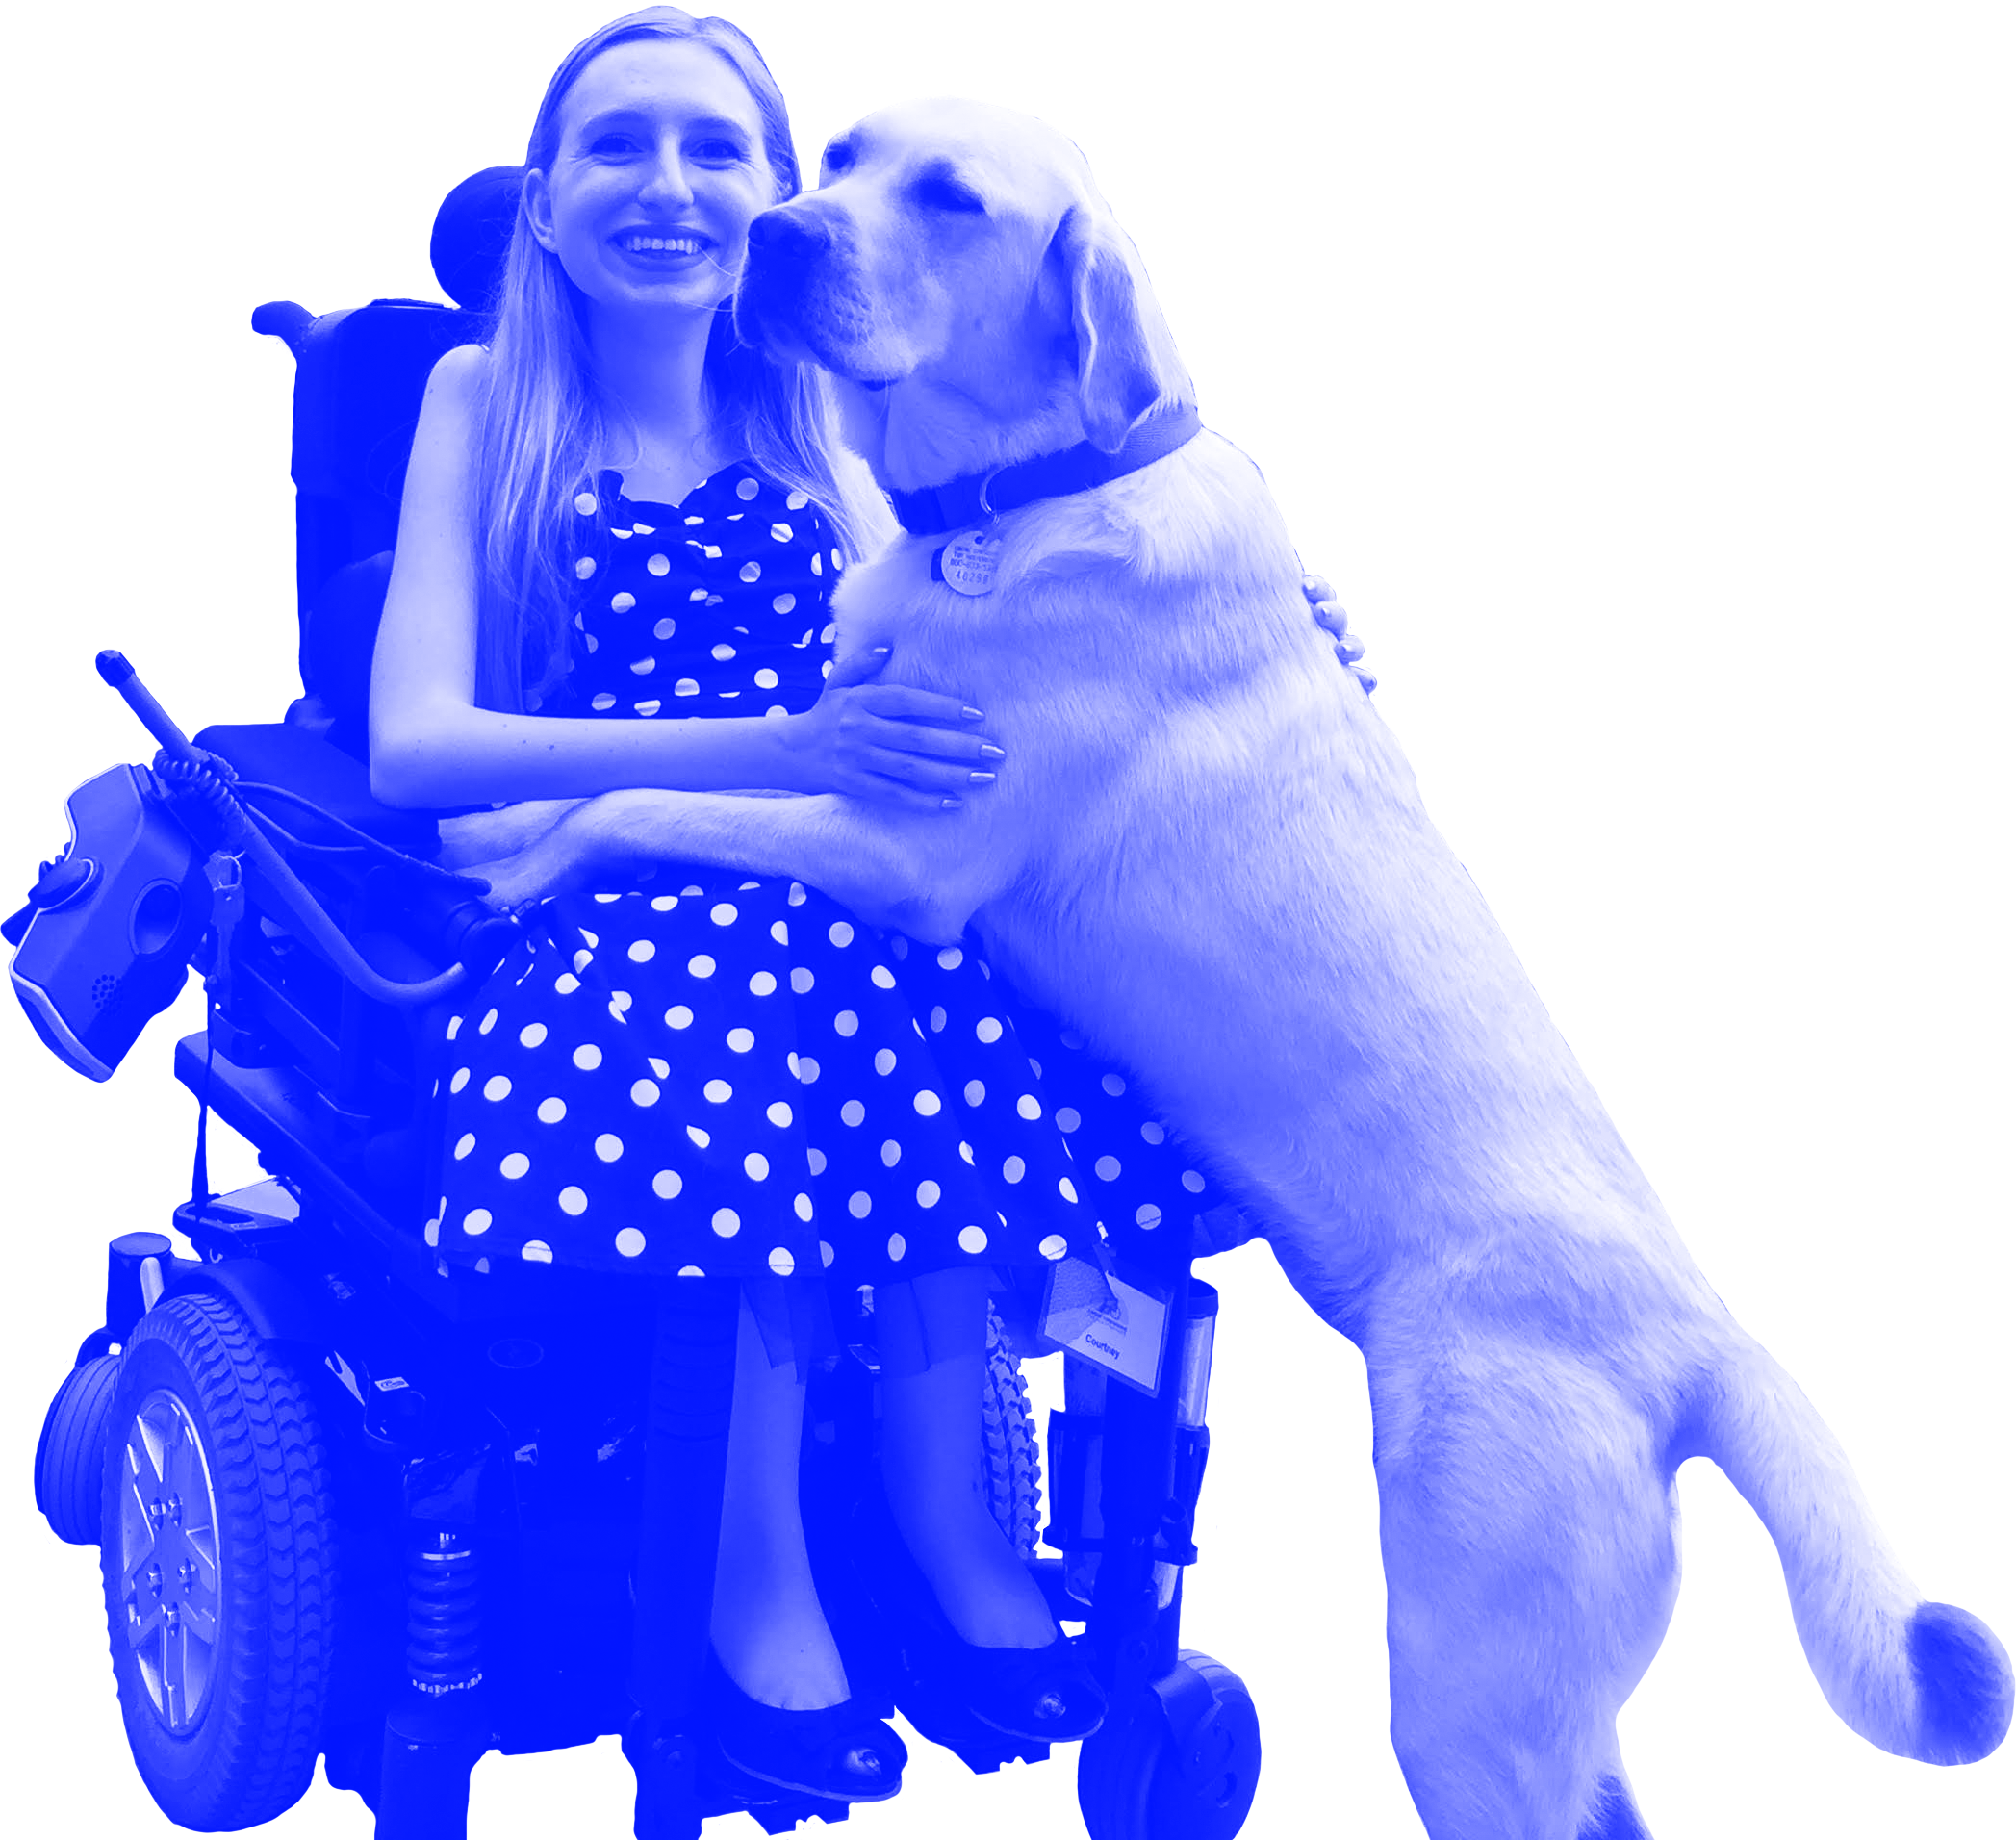 Image of Courtney smiling at the camera with her service dog, Cajun. Courtney has long, straight, blonde hair and is sitting in a wheelchair. She is wearing a polka-dotted dress and peep-toe heels. Her service dog is a yellow Labrador Retriever.